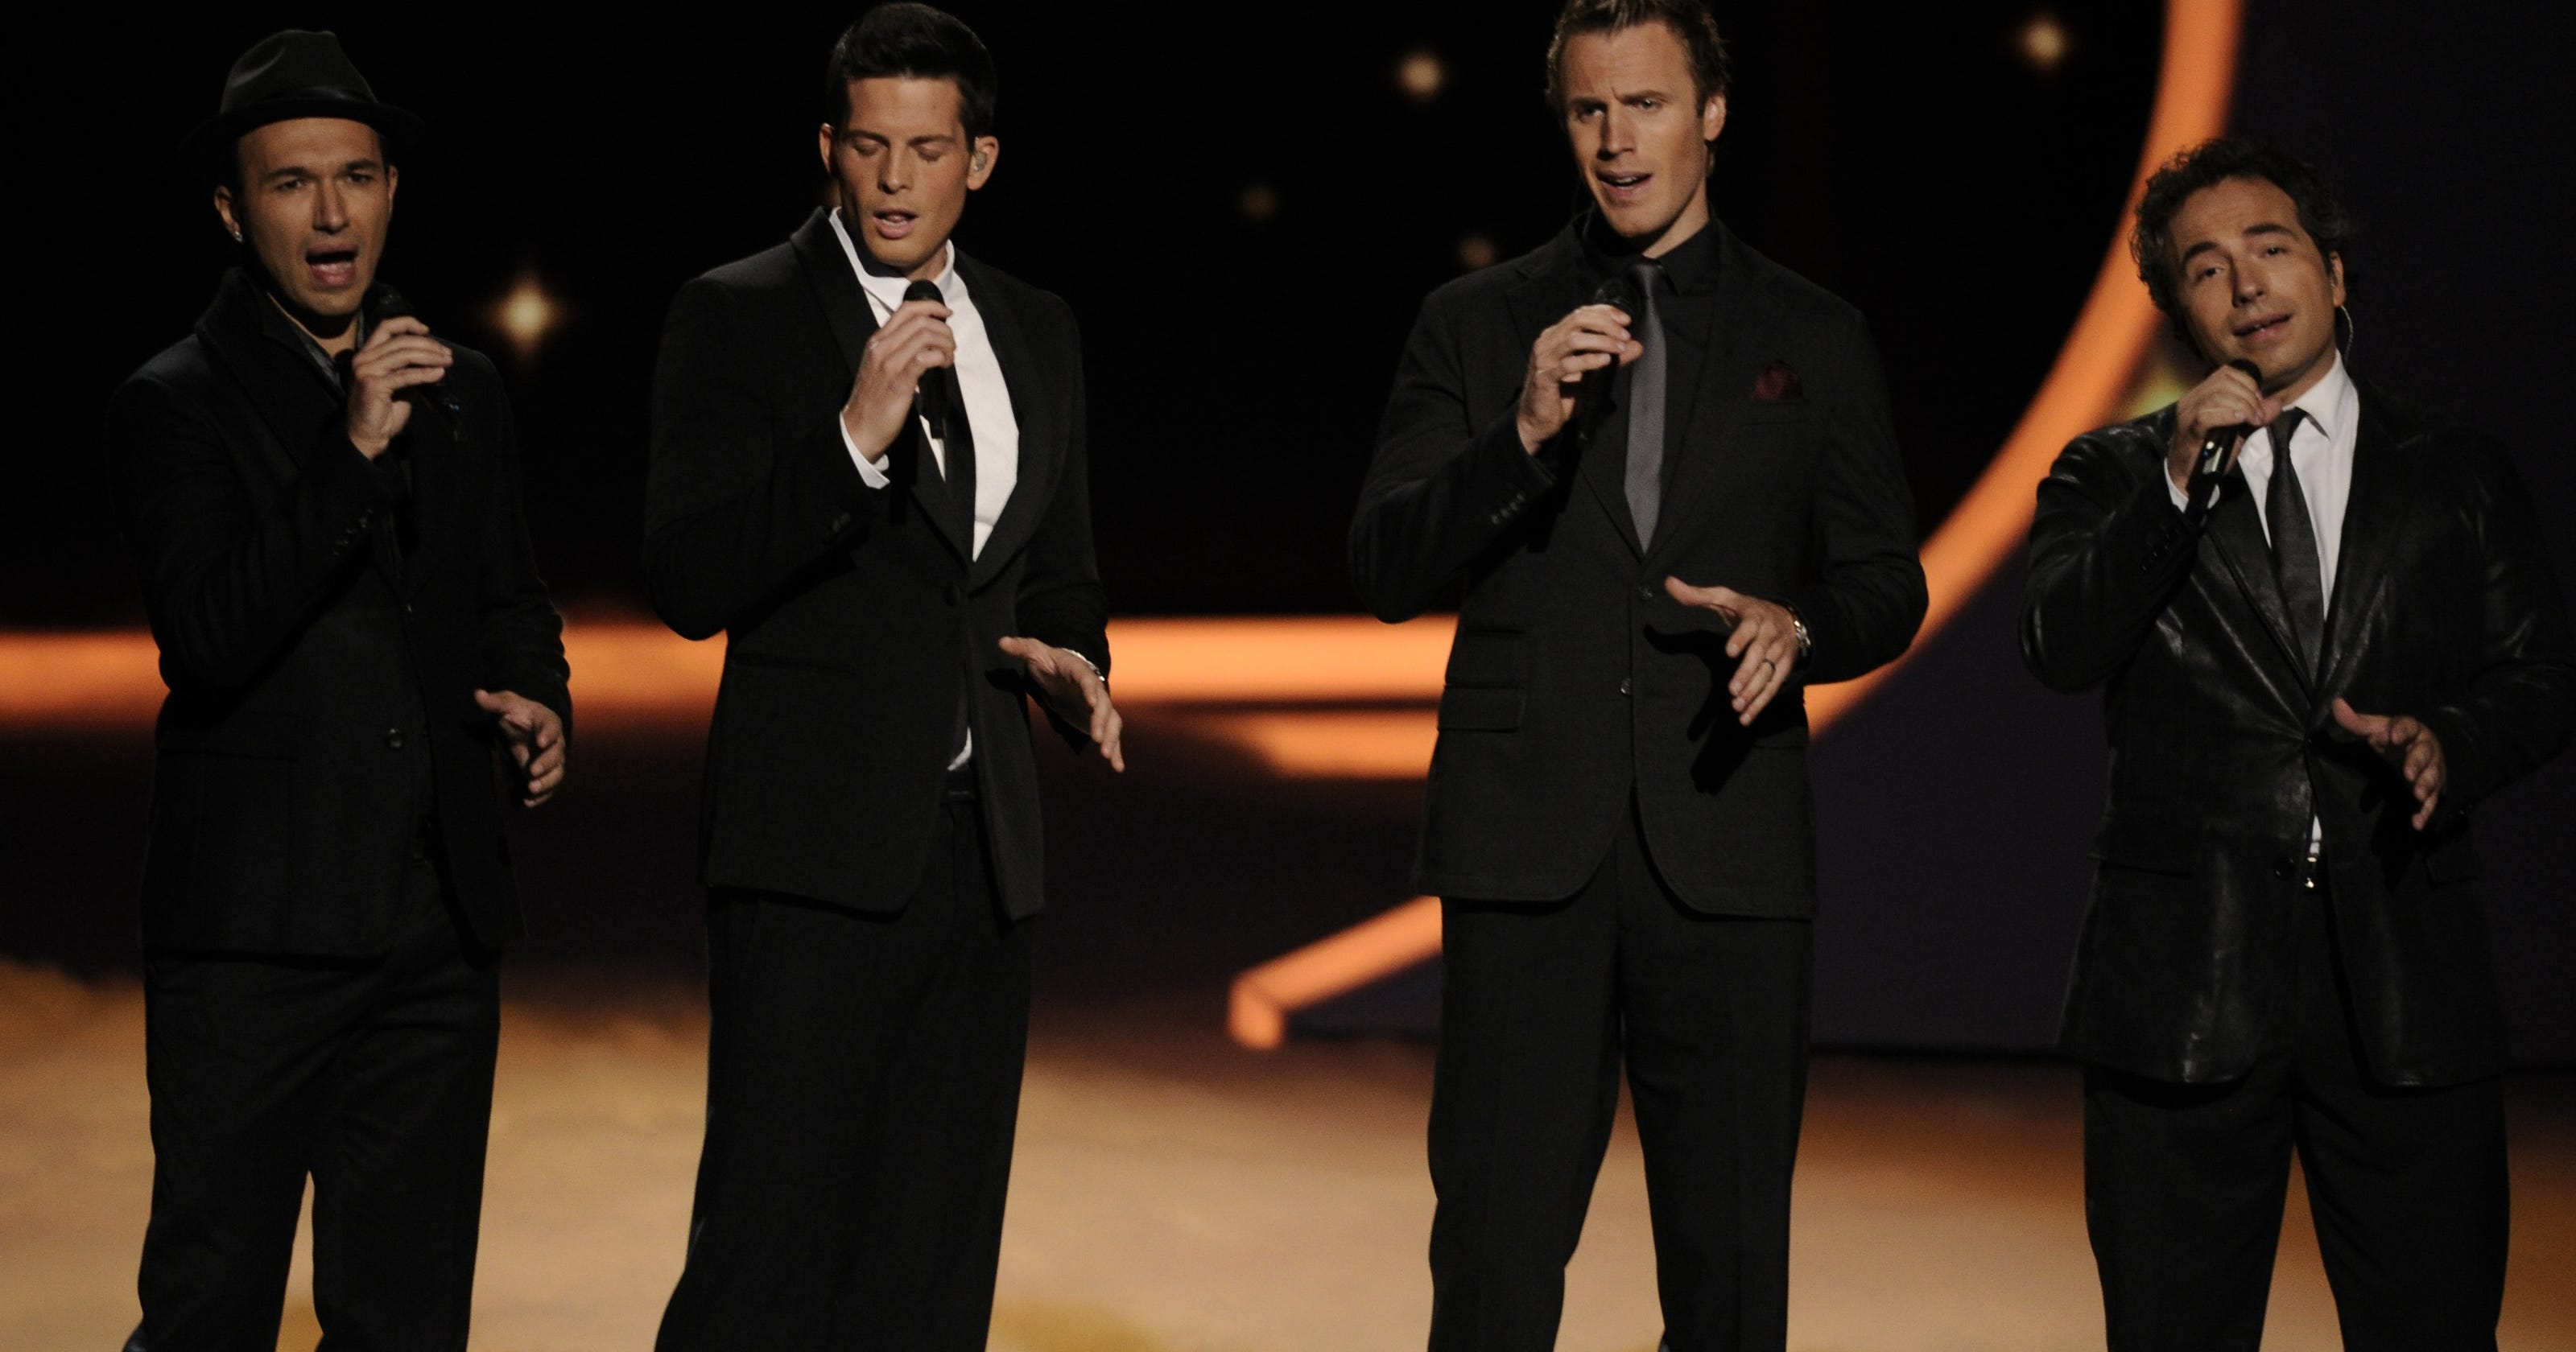 Free download: The Tenors' 'Lead With Your Heart'